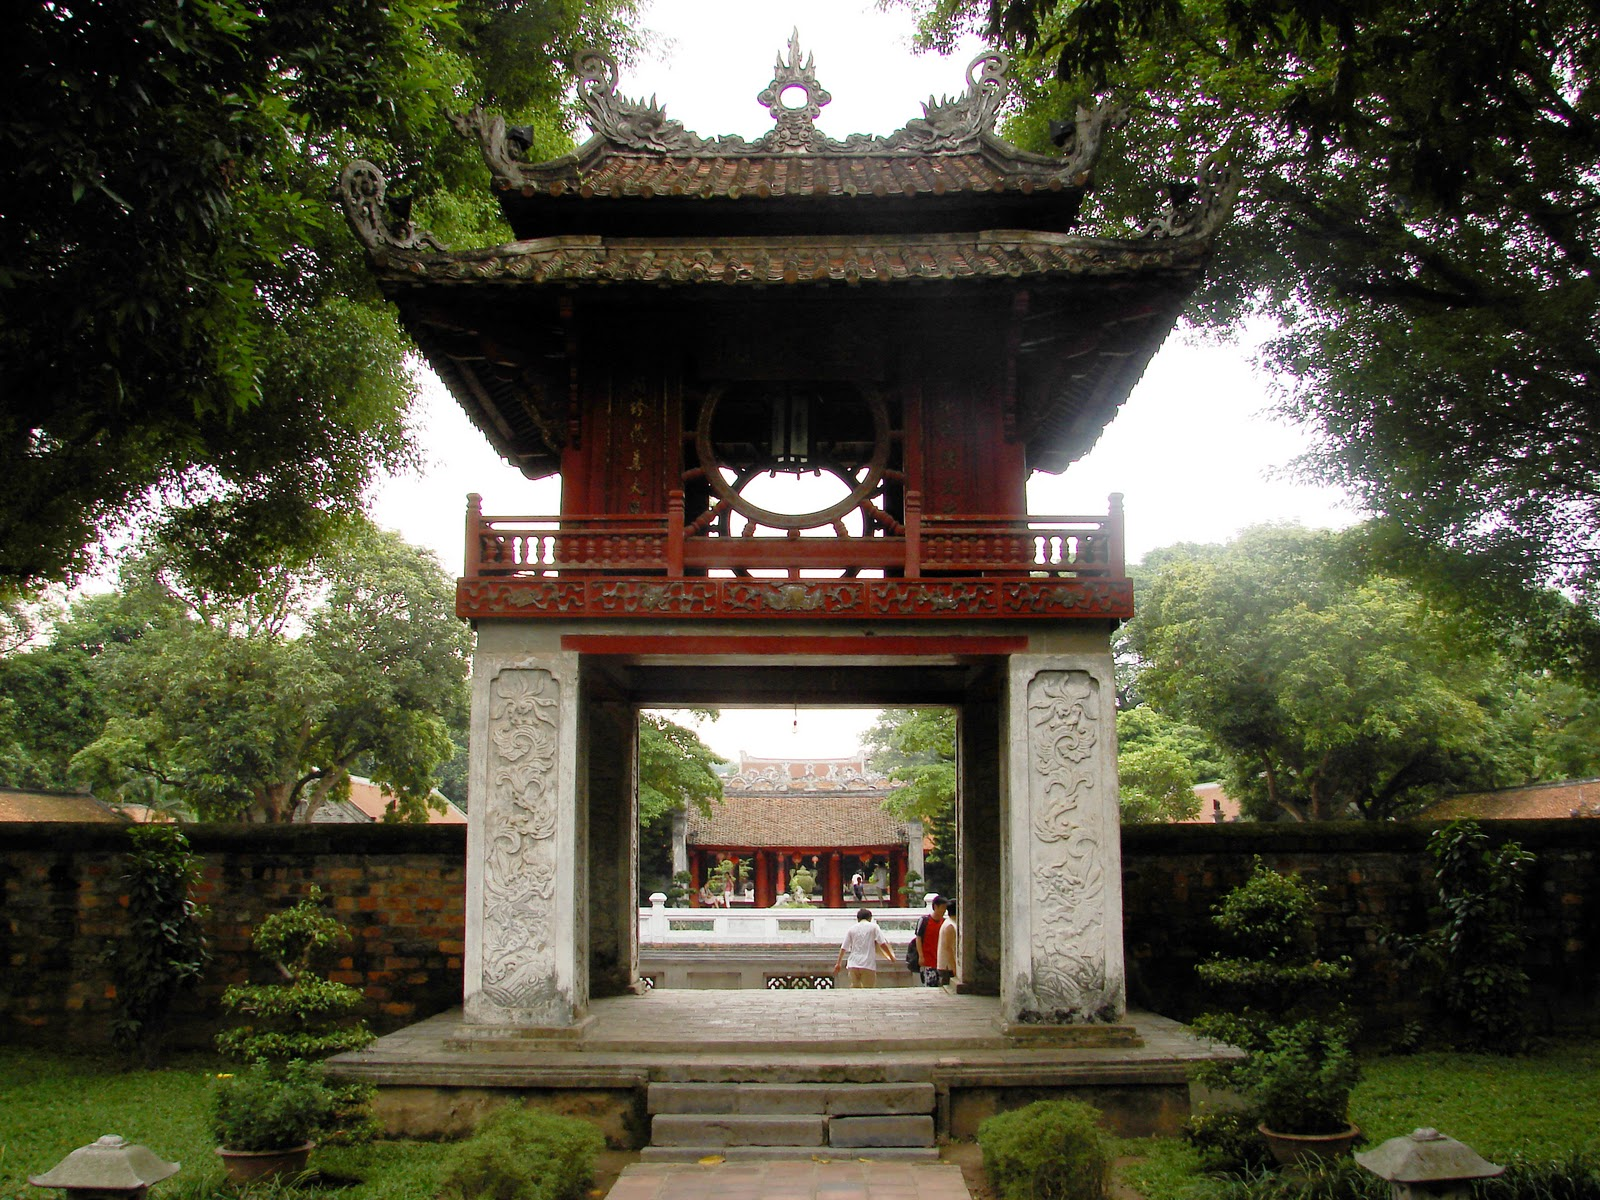 The Temple of Literature – Travel guide